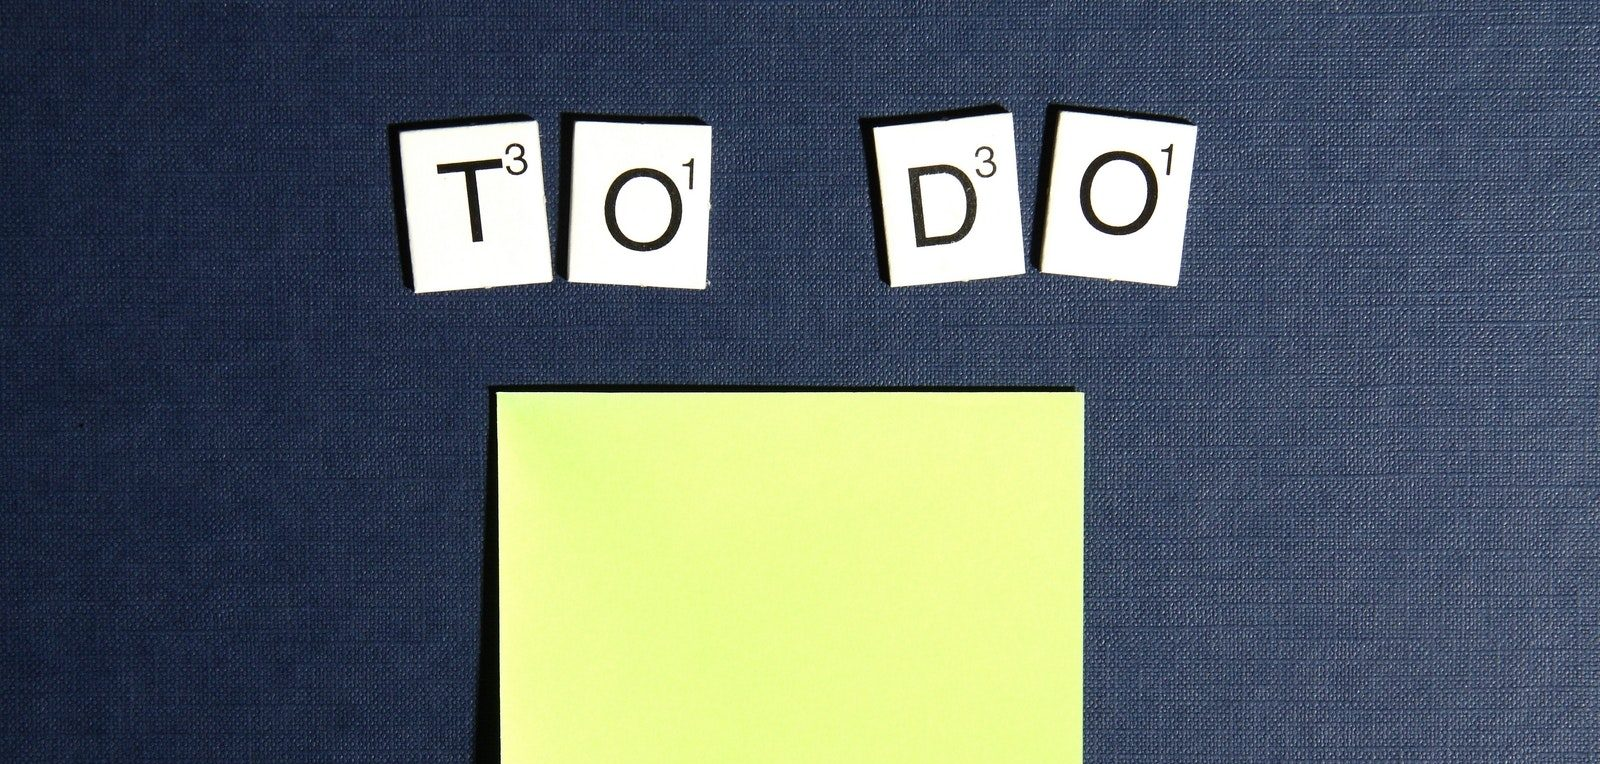 image of to do with a postit depicting meetin agenda